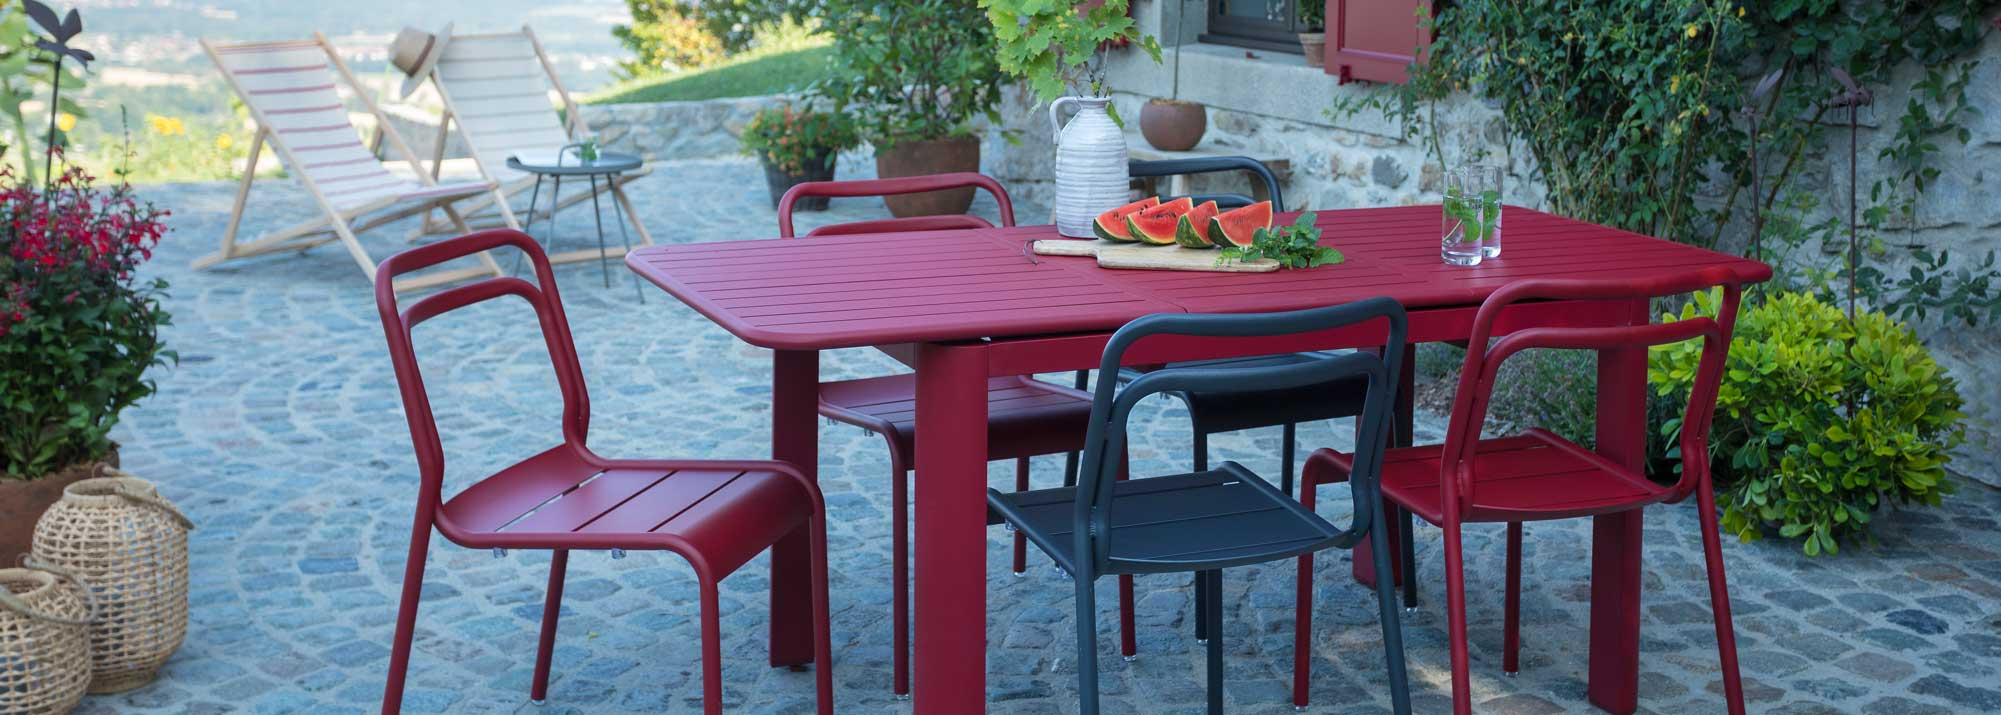 Table Jardin Table De Jardin Botanic Tables De Jardin En Aluminium Teck